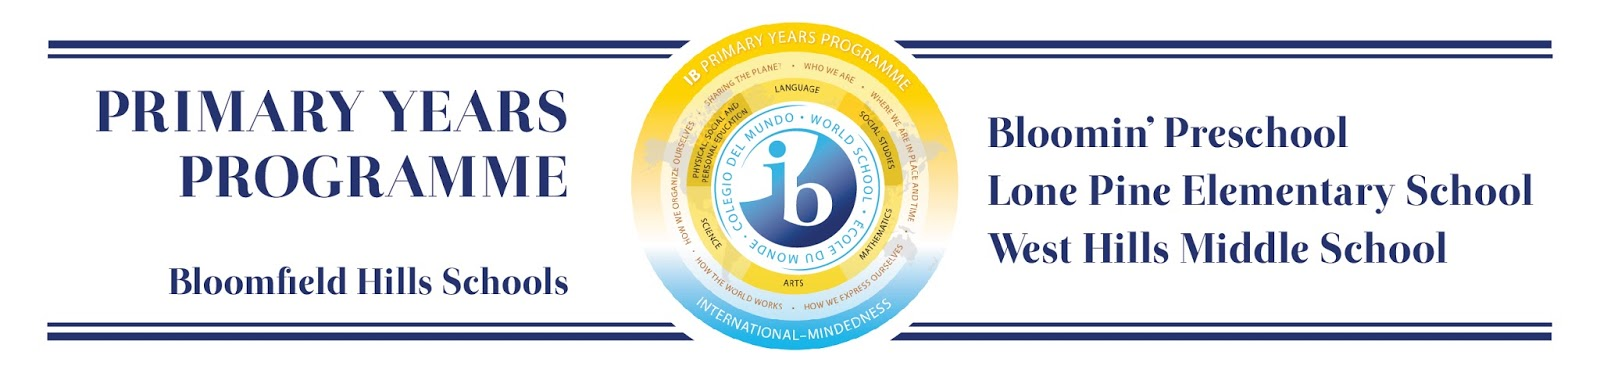 2014-15 Special Needs Policy International Baccalaureate Programme Standards and Practices Standard A: Philosophy The school s educational beliefs and values reflect IB philosophy. A.9: The school supports access for students to the IB programme(s) and philosophy.